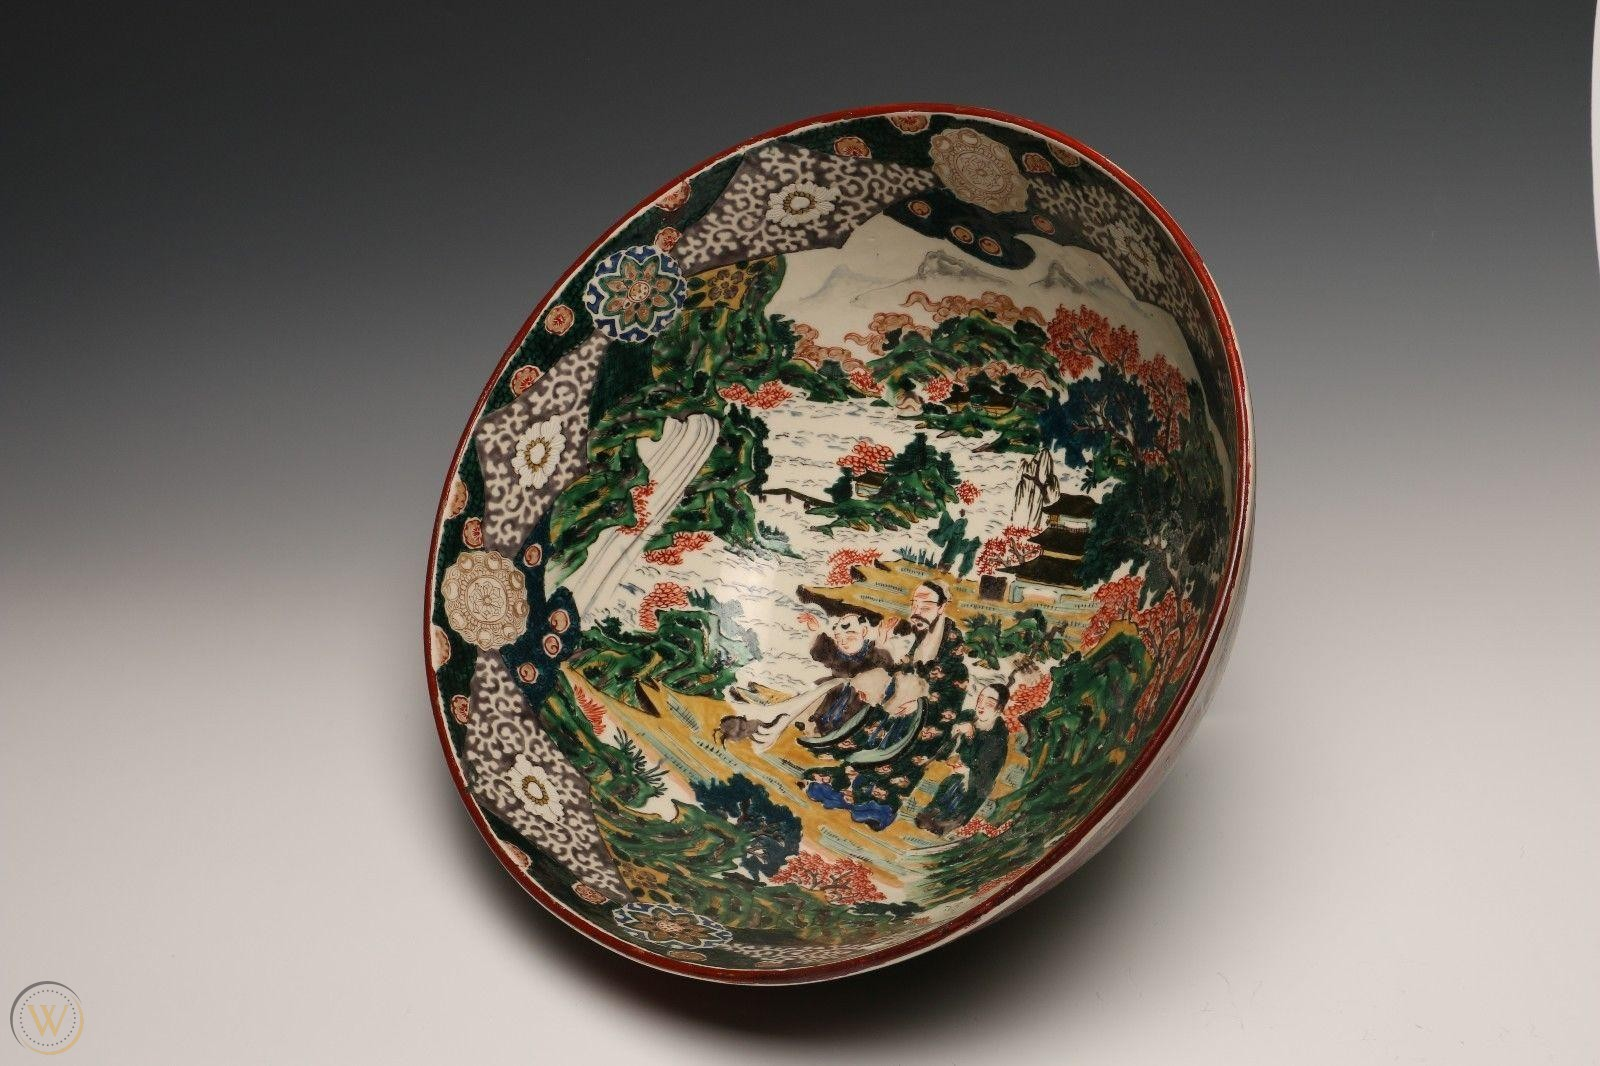 Kutani: Japanese porcelain with a fragmented history